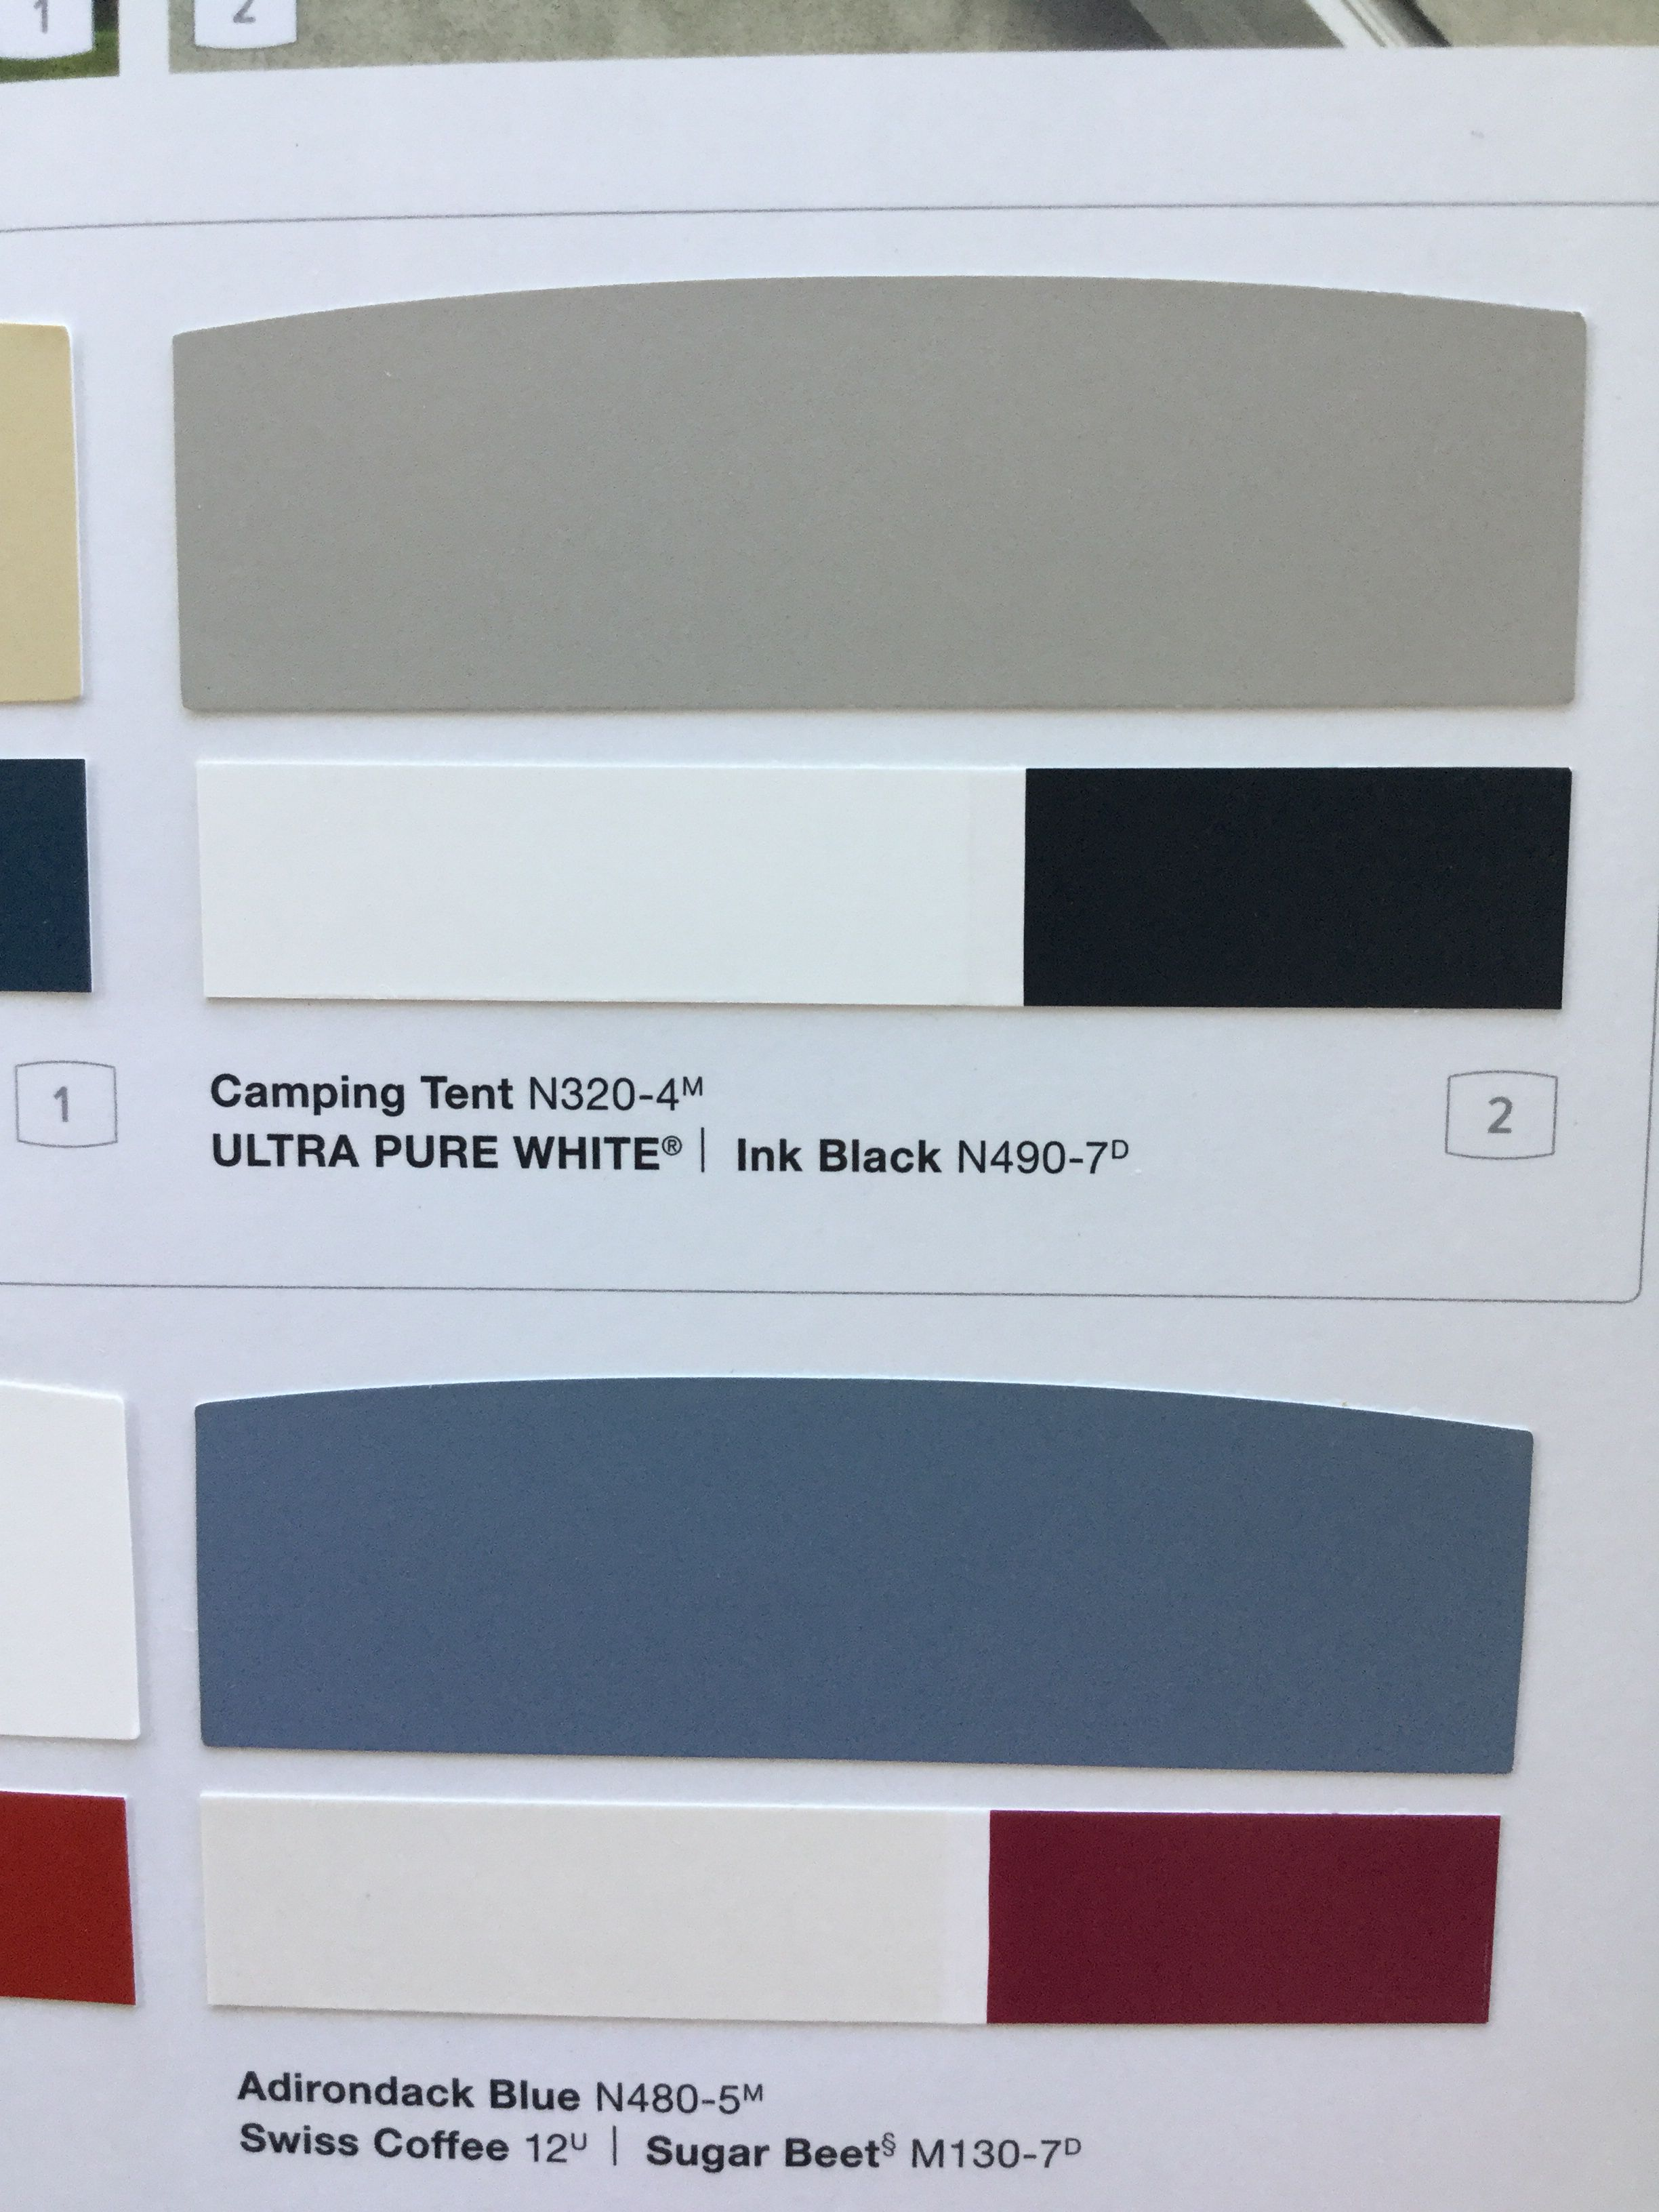 Exterior House Colors Behr Paint Camping Tent Ink Black Adirondack Blue Swiss Coffee Sugar Beet Floor Paint Colors Porch Paint Garage Paint Colors